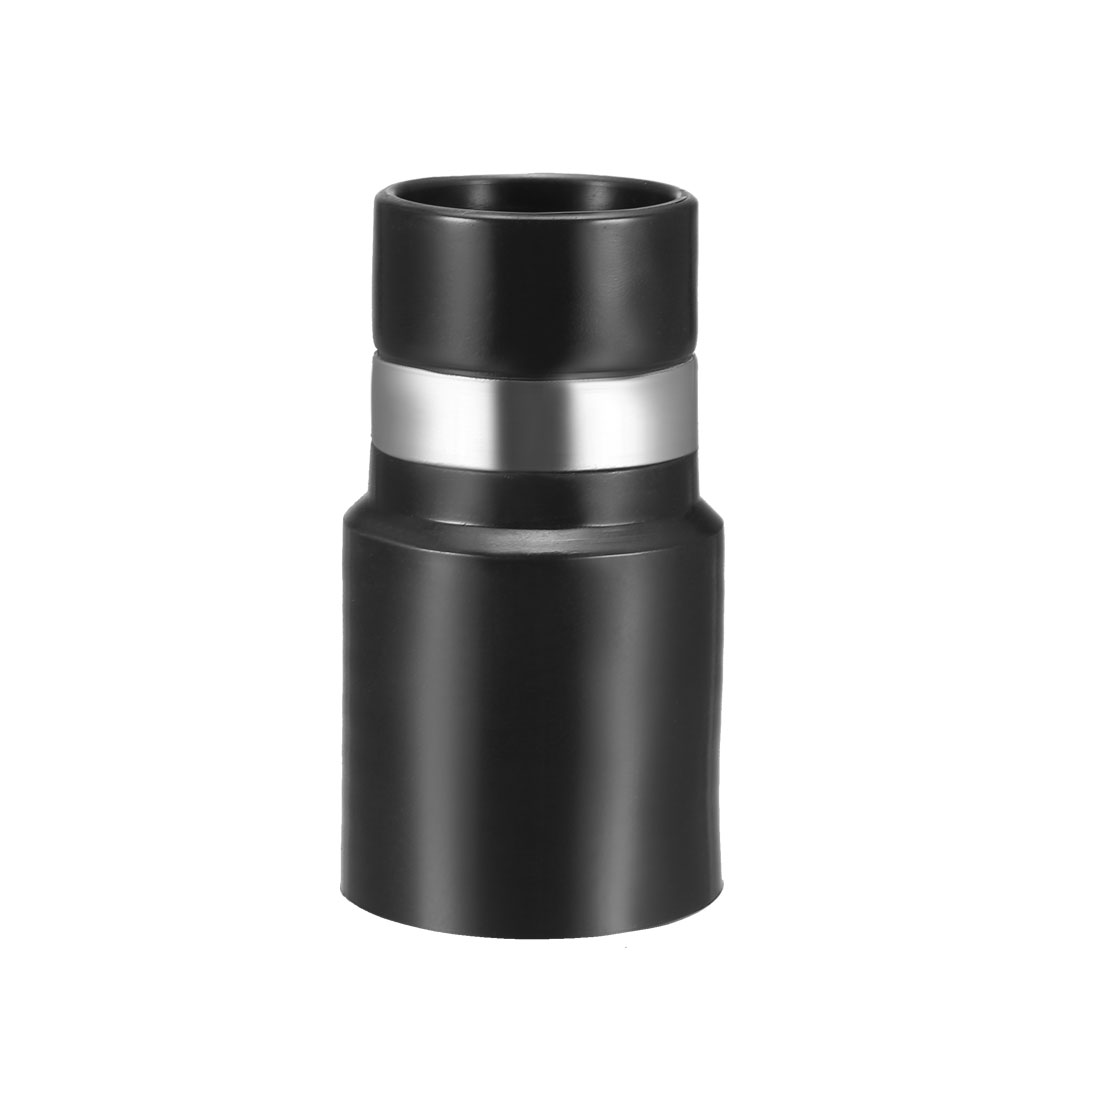 Central Vacuum Cleaner Hose Adapter Connector 32mm Plastic Black